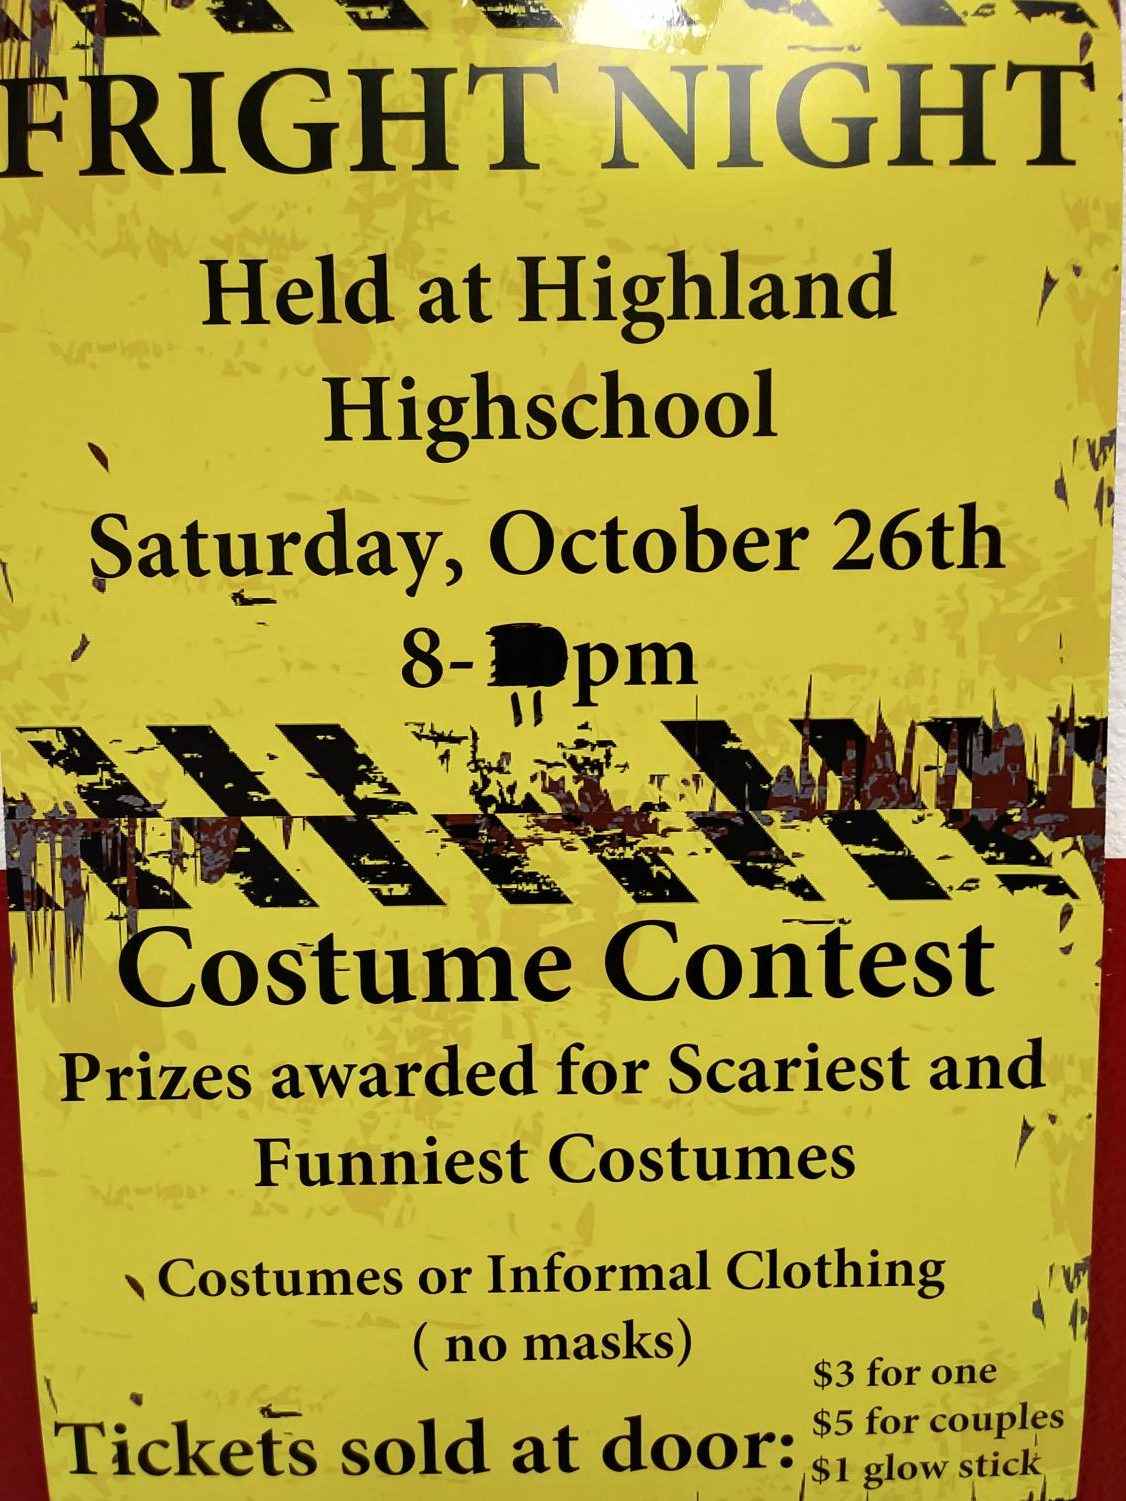 Fright Night posters can be found throughout the hallways, giving students information about the dance.